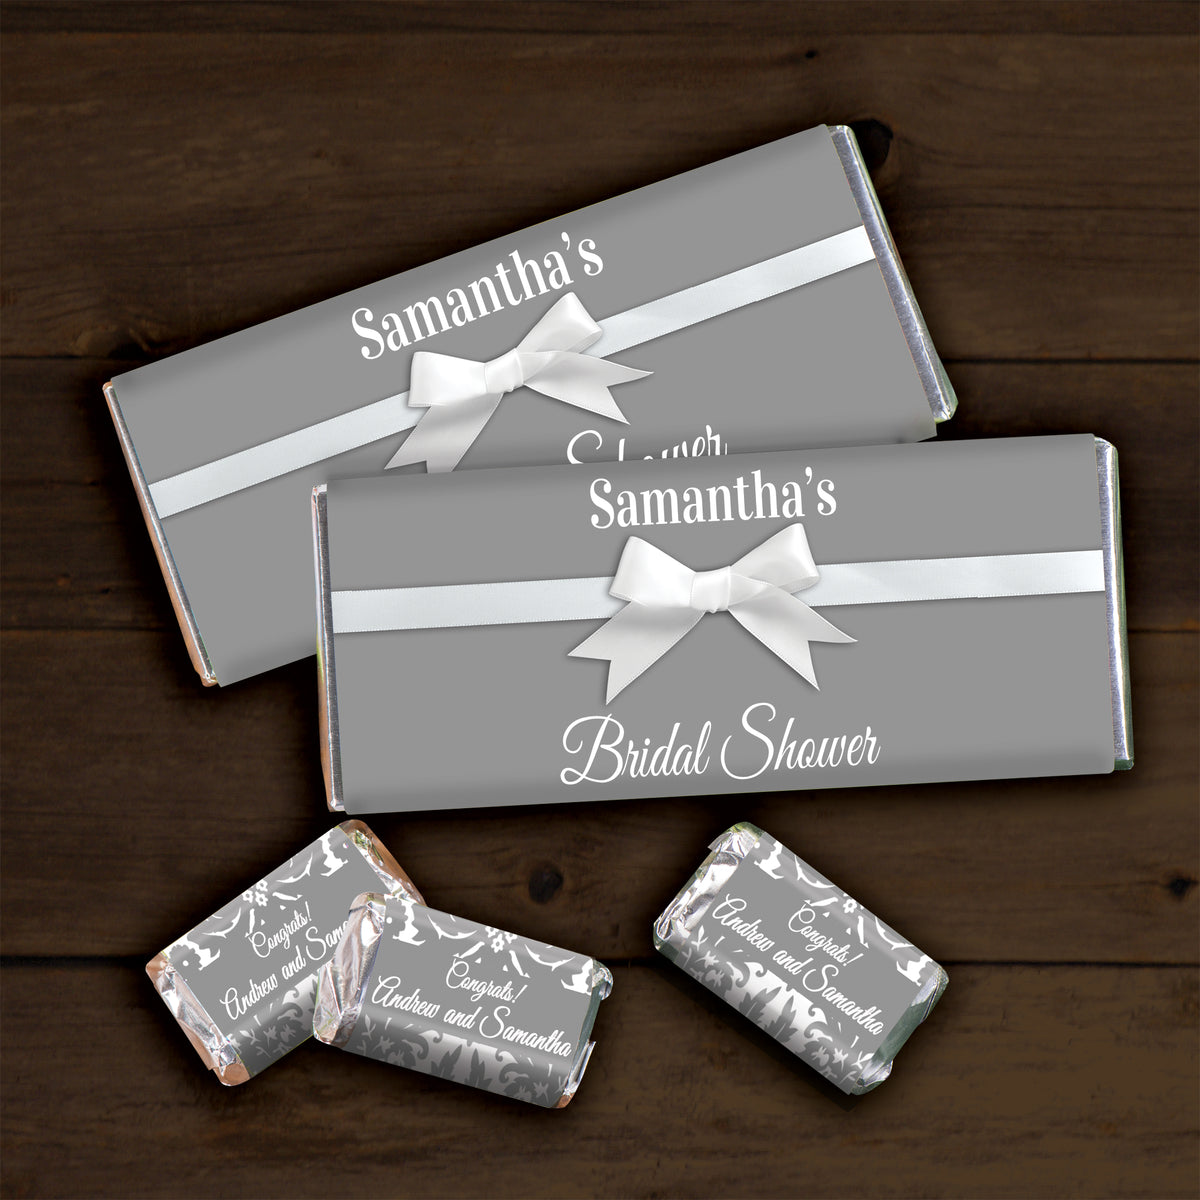 Hershey's Grad Goals Personalized Candy Bars